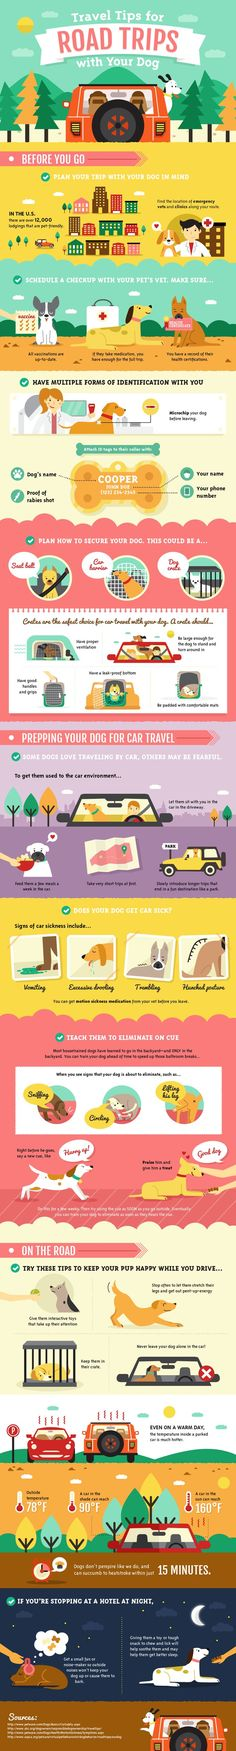 Travel tips for road trips with your dog.